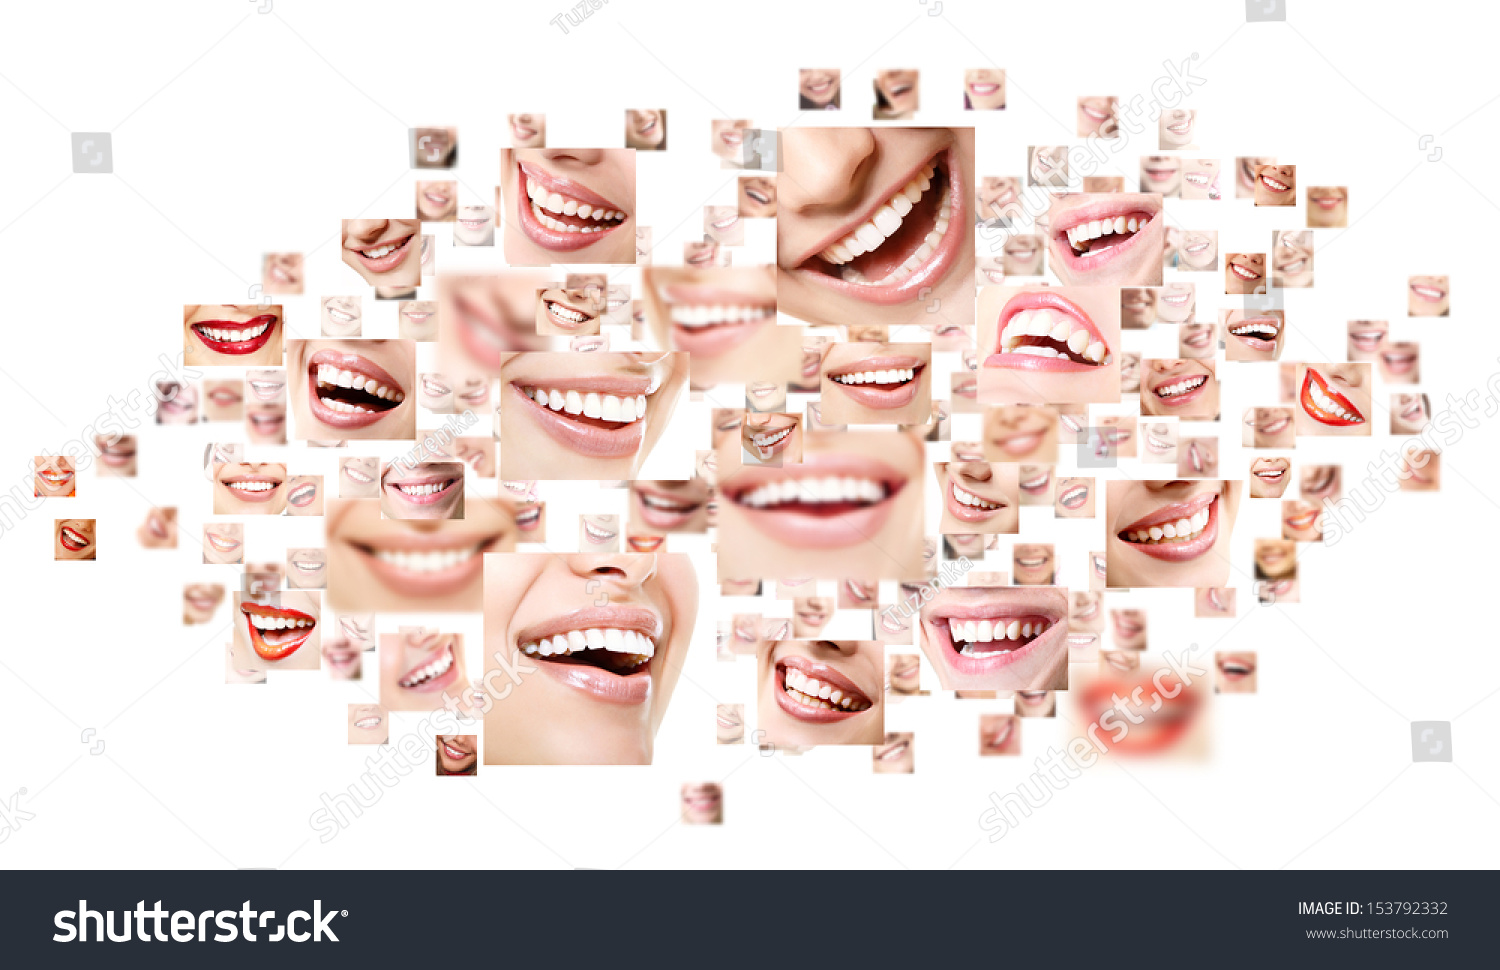 Perfect Smiles Collage Collection Beautiful Wide Stock ...